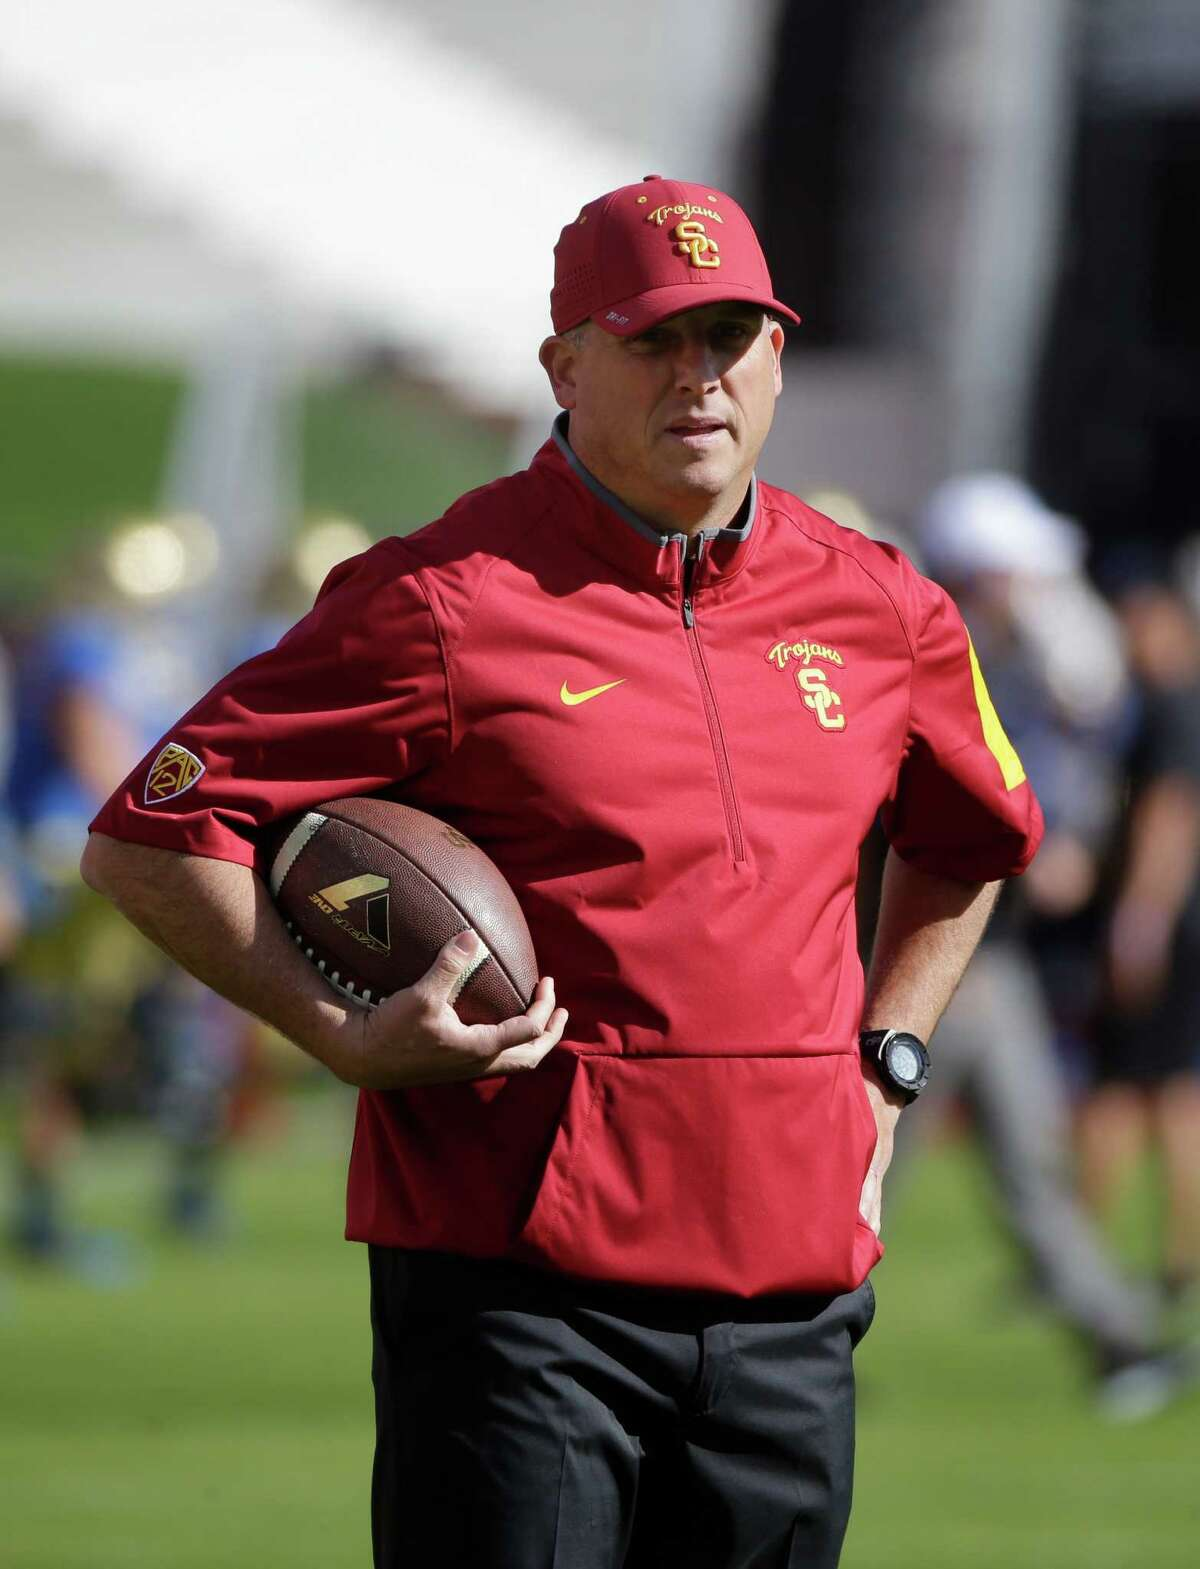 Southern California interim head coach Clay Helton watches his players warm up before an NCAA college football game against UCLA Saturday, Nov. 28, 2015, in Los Angeles. (AP Photo/Jae C. Hong)